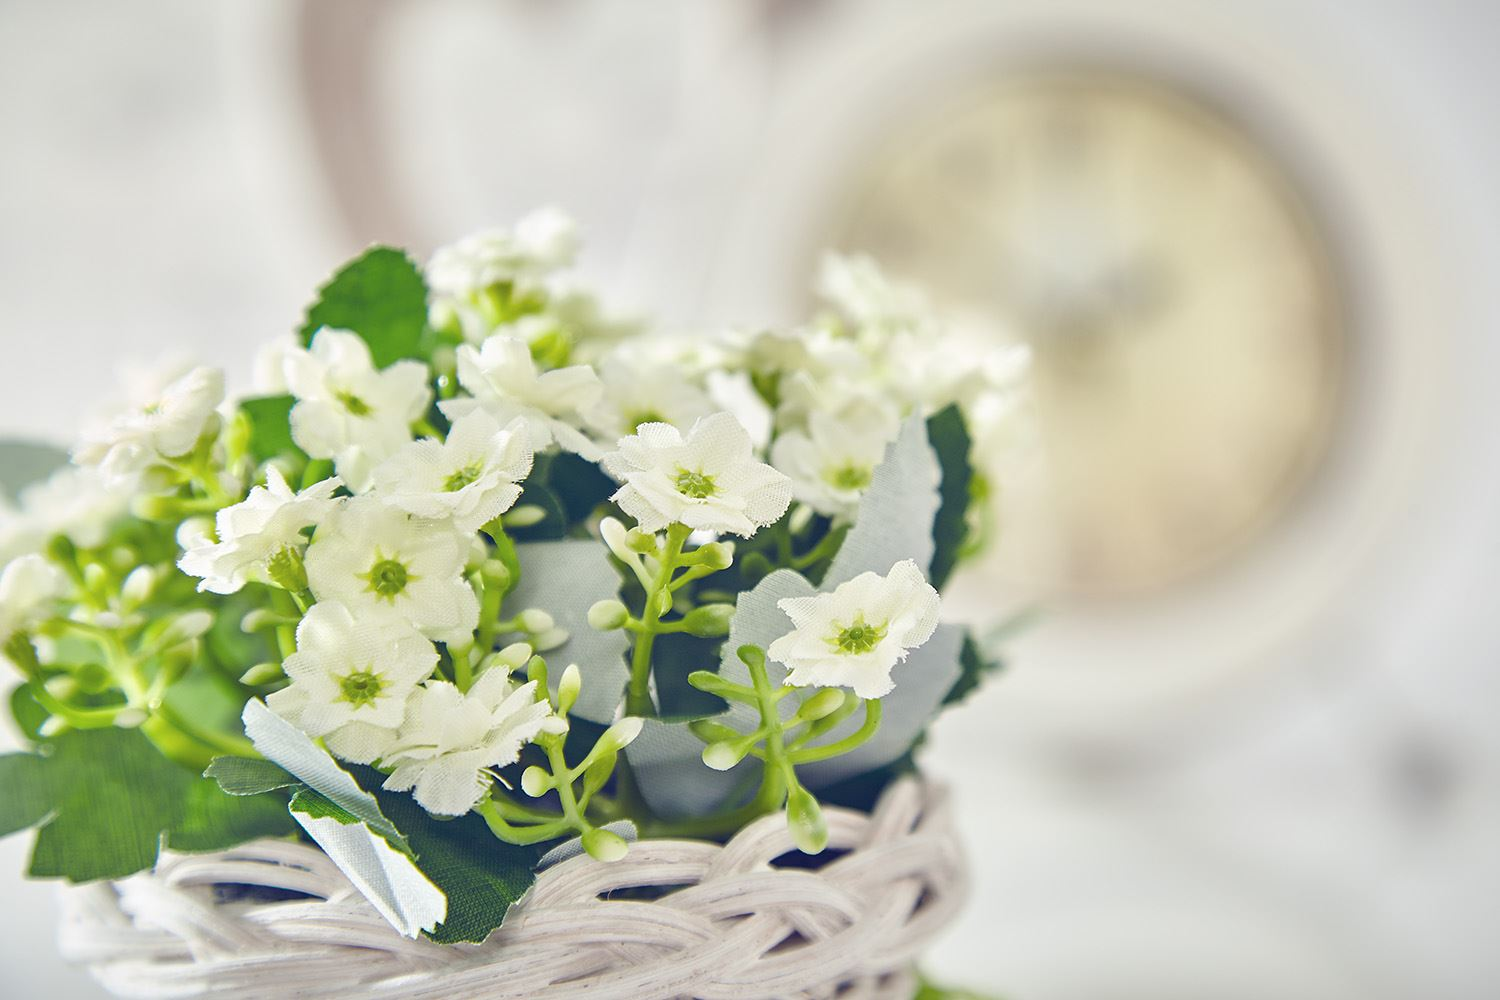 Artificial Forget Me Not Flowers Plants In Basket Home Wedding